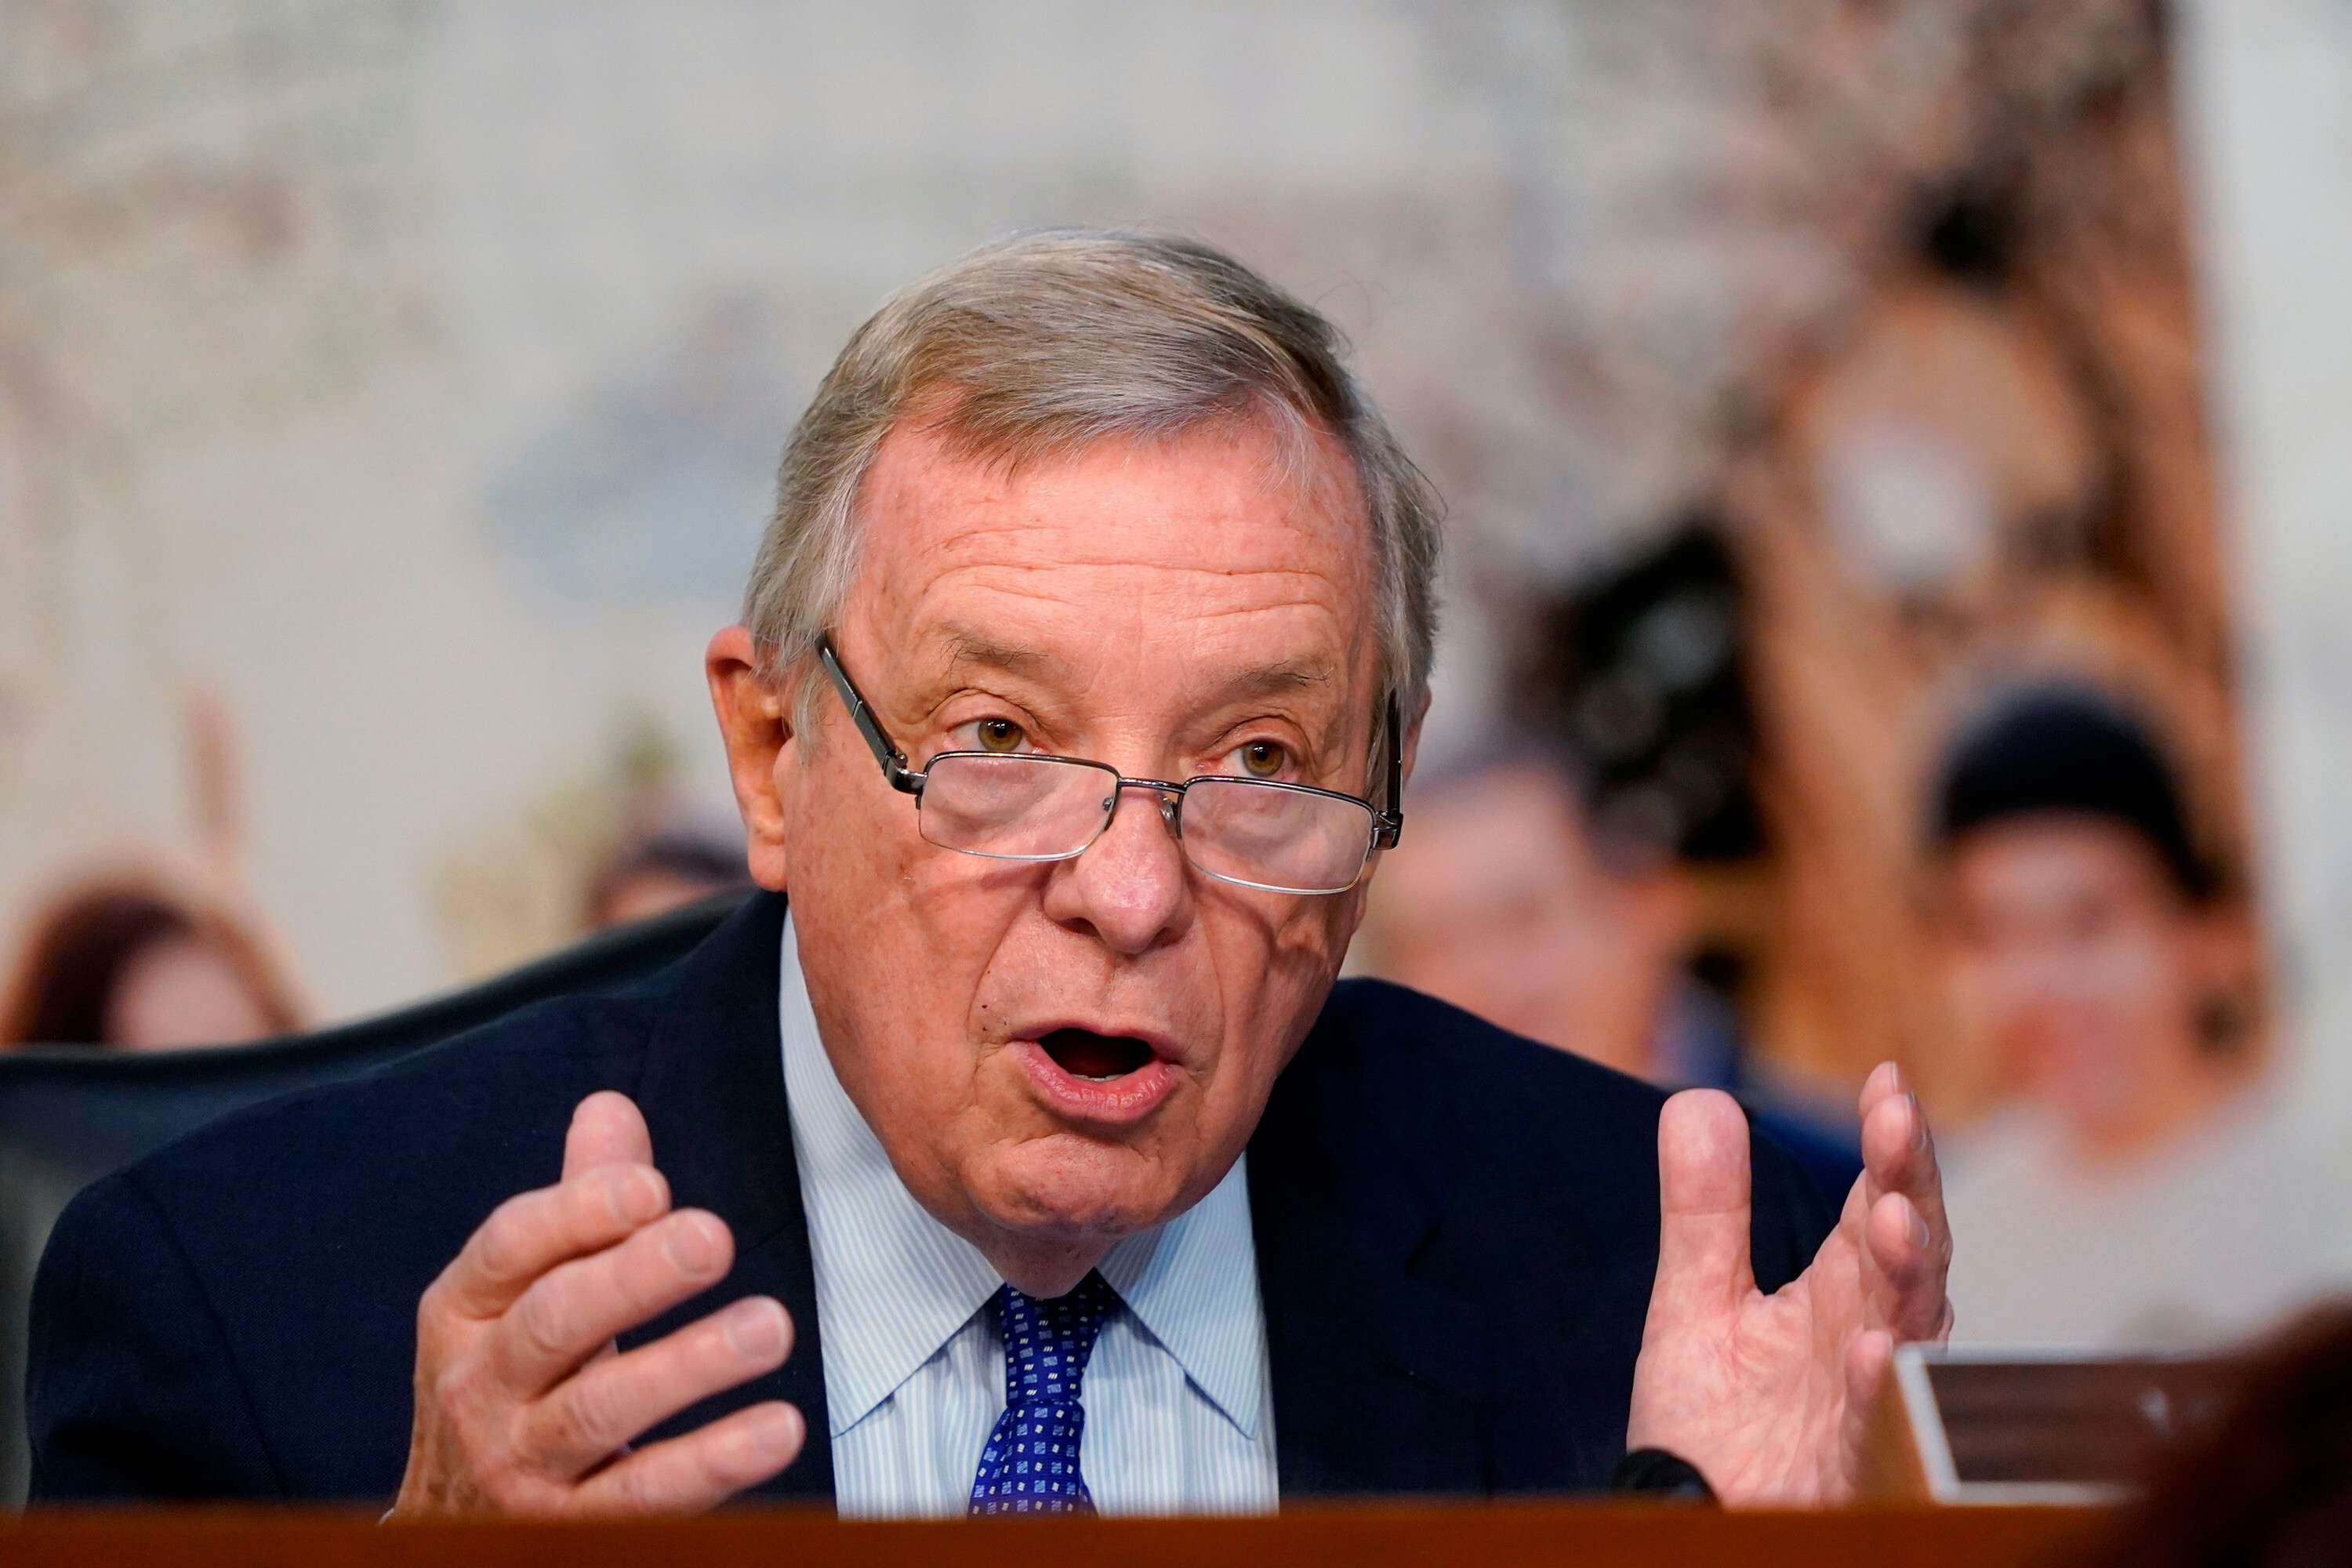 Senate Judiciary Committee to hold hearing on Supreme Court's abortion ruling and 'shadow docket'